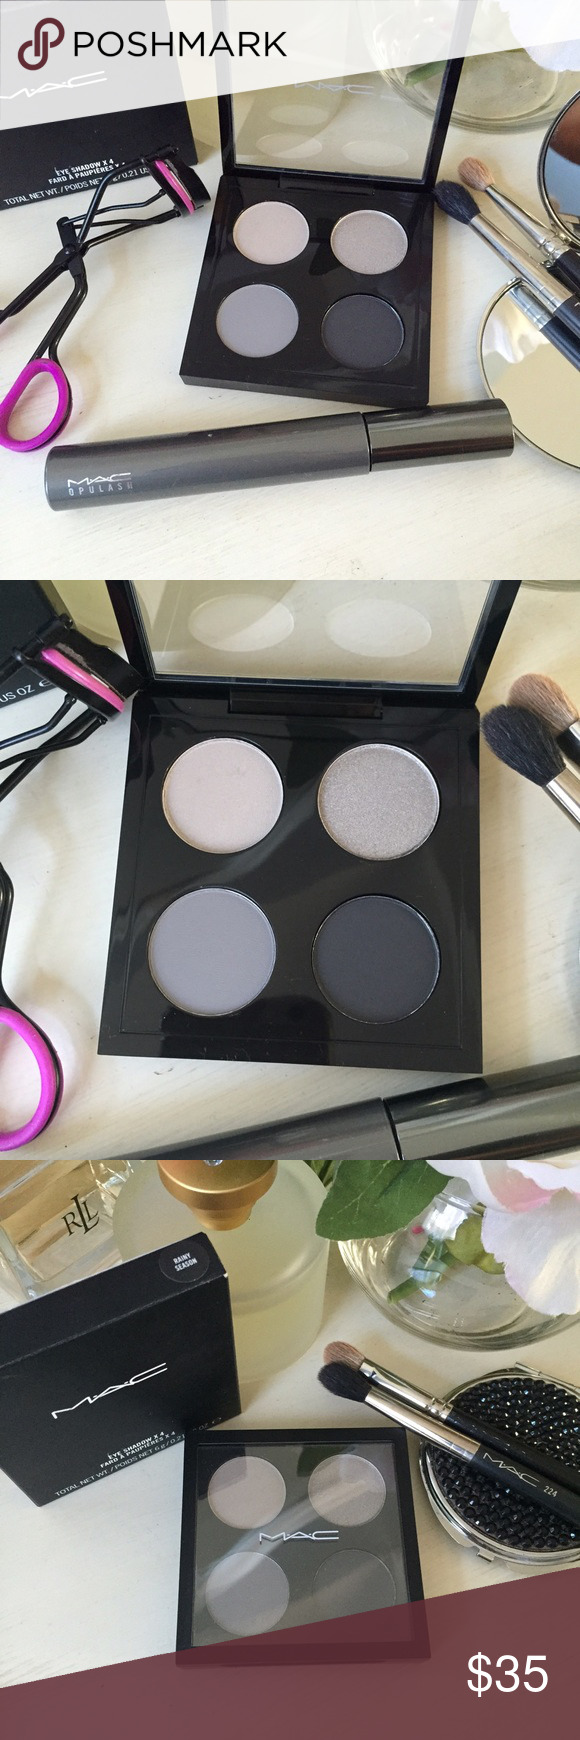 🆕 MAC eyeshadow eye palette The perfect palette for a gorgeous smoky eye! Never used & New in box MAC rainy season eyeshadow palette. Colors: rainy season, arctic grey, courtly grey, typographic. MAC Cosmetics Makeup Eyeshadow